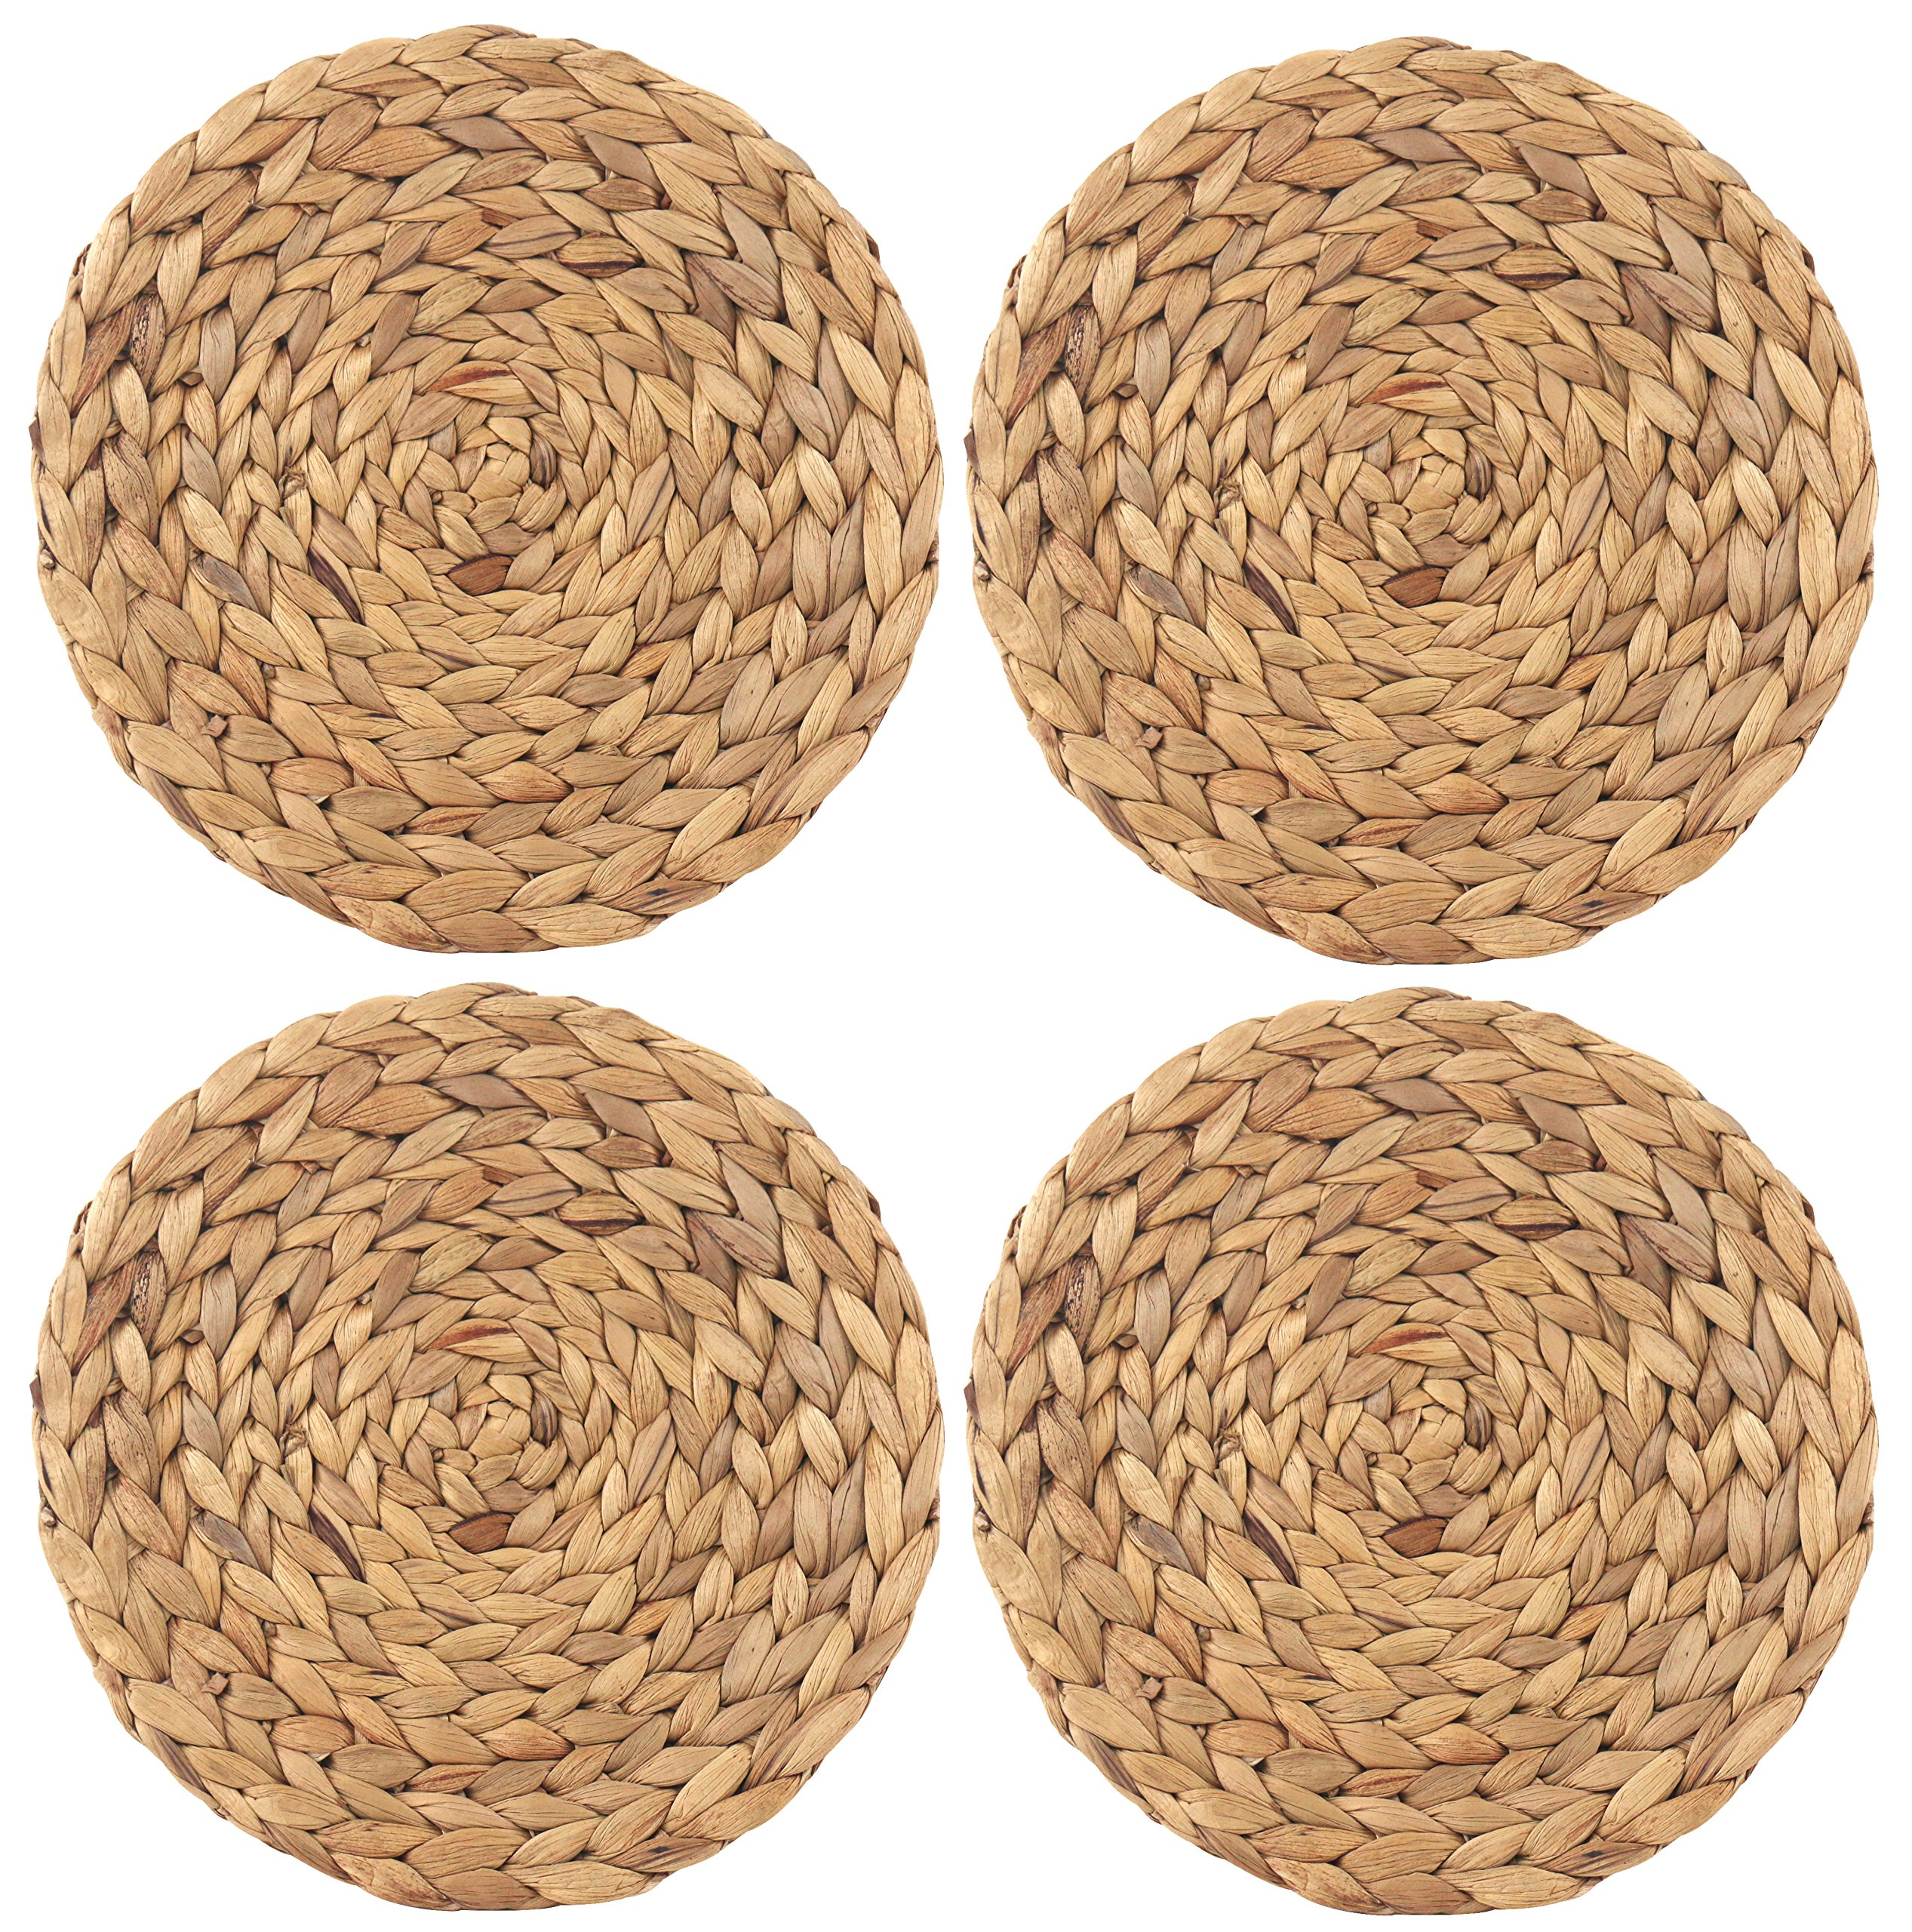 wellhouse Natural Handmade Straw Woven Placemat Wooden Round Braided Mat Heat Resistant Hot Insulation Anti-Skidding Pad Water Hyacinth Placemats (11.8Inch, Grass mat-4 Pack) - Size:Diameter about 5.7inch(14.5cm)7.3inch (18.5cm)9.84Inch(25cm),11.8Inch(30cm),14.5Inch(37cm). Cleaning method:Wipe gently with a damp cloth and store in a dry area. Natural Design:Provides a neutral backdrop that looks good on most table tops. - placemats, kitchen-dining-room-table-linens, kitchen-dining-room - A1H5Ax2cJ2L -